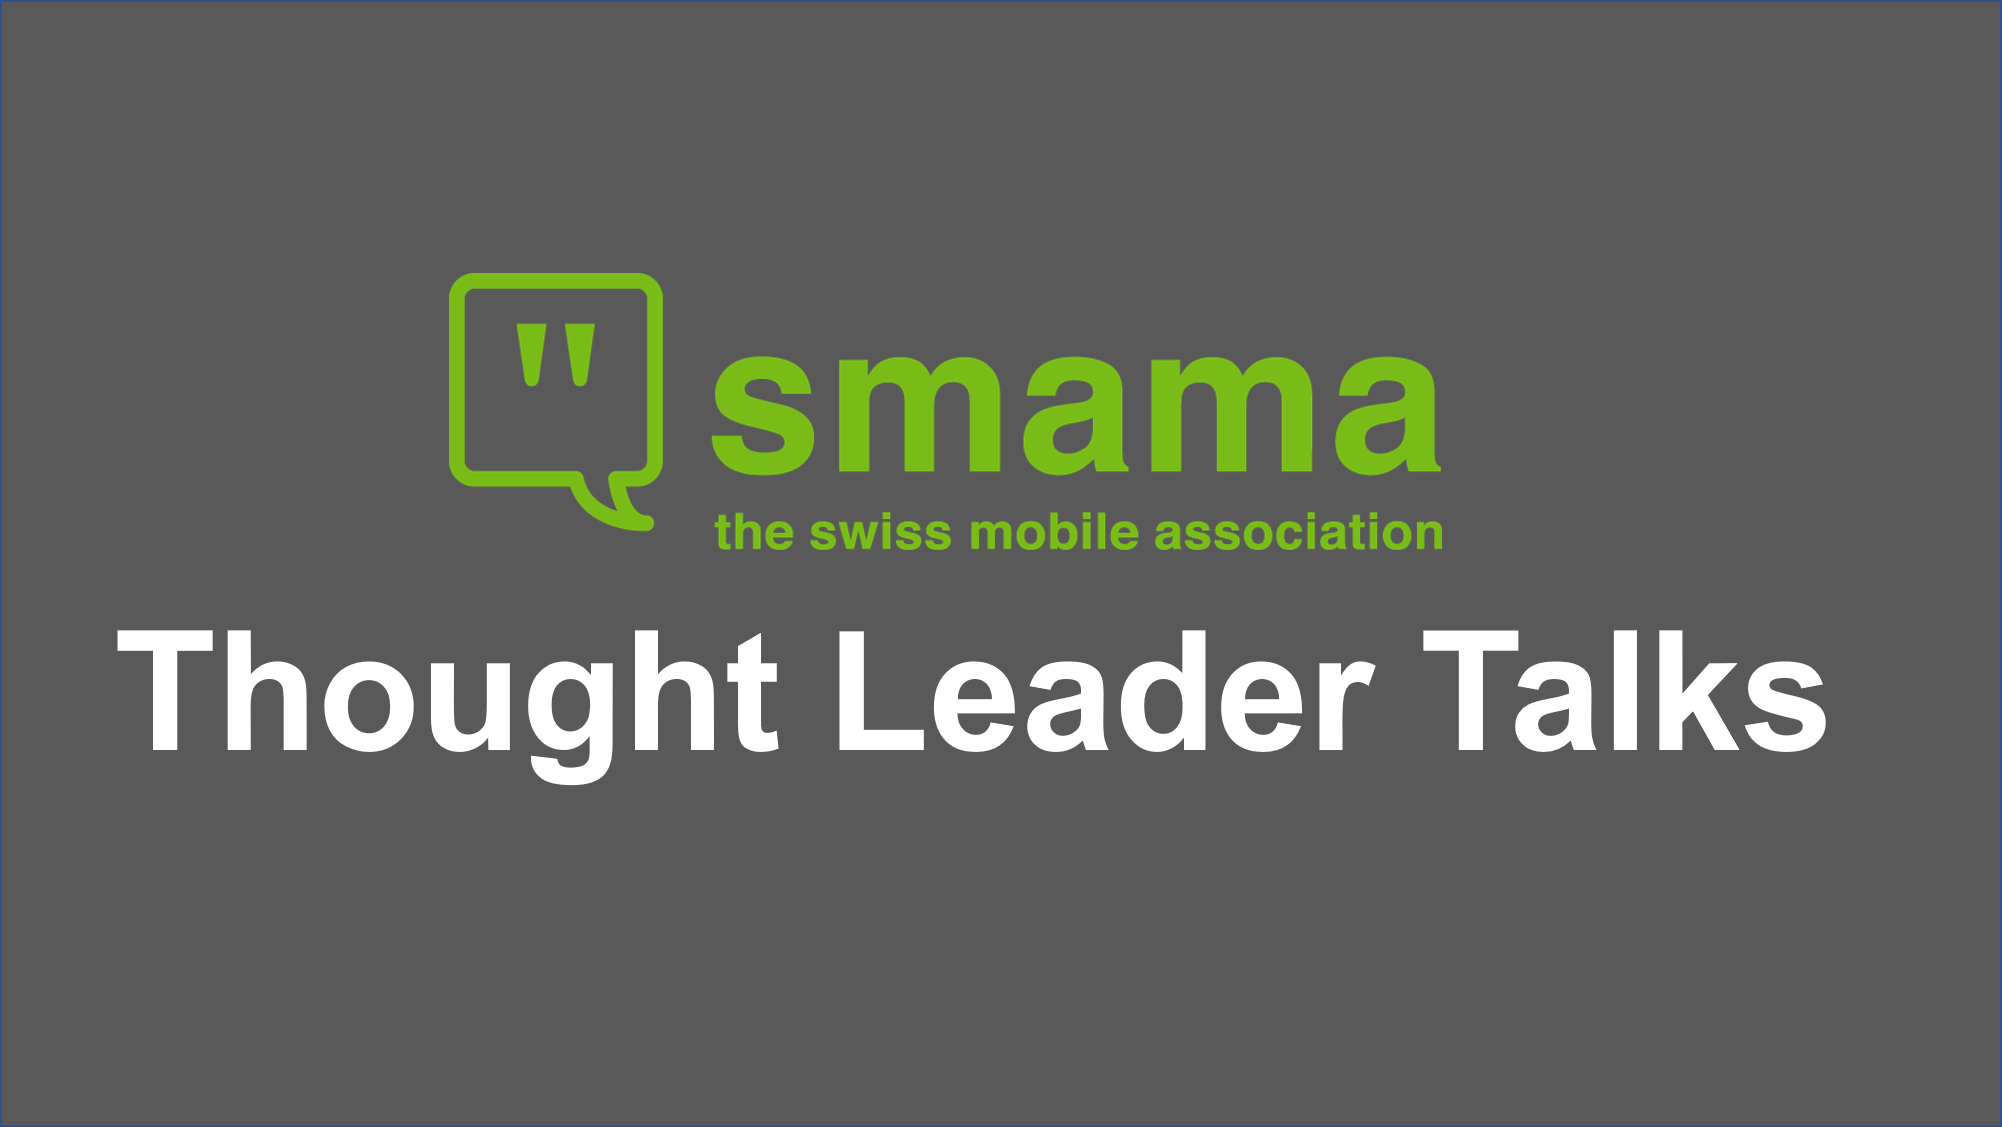 Smama Thought Leader Talks